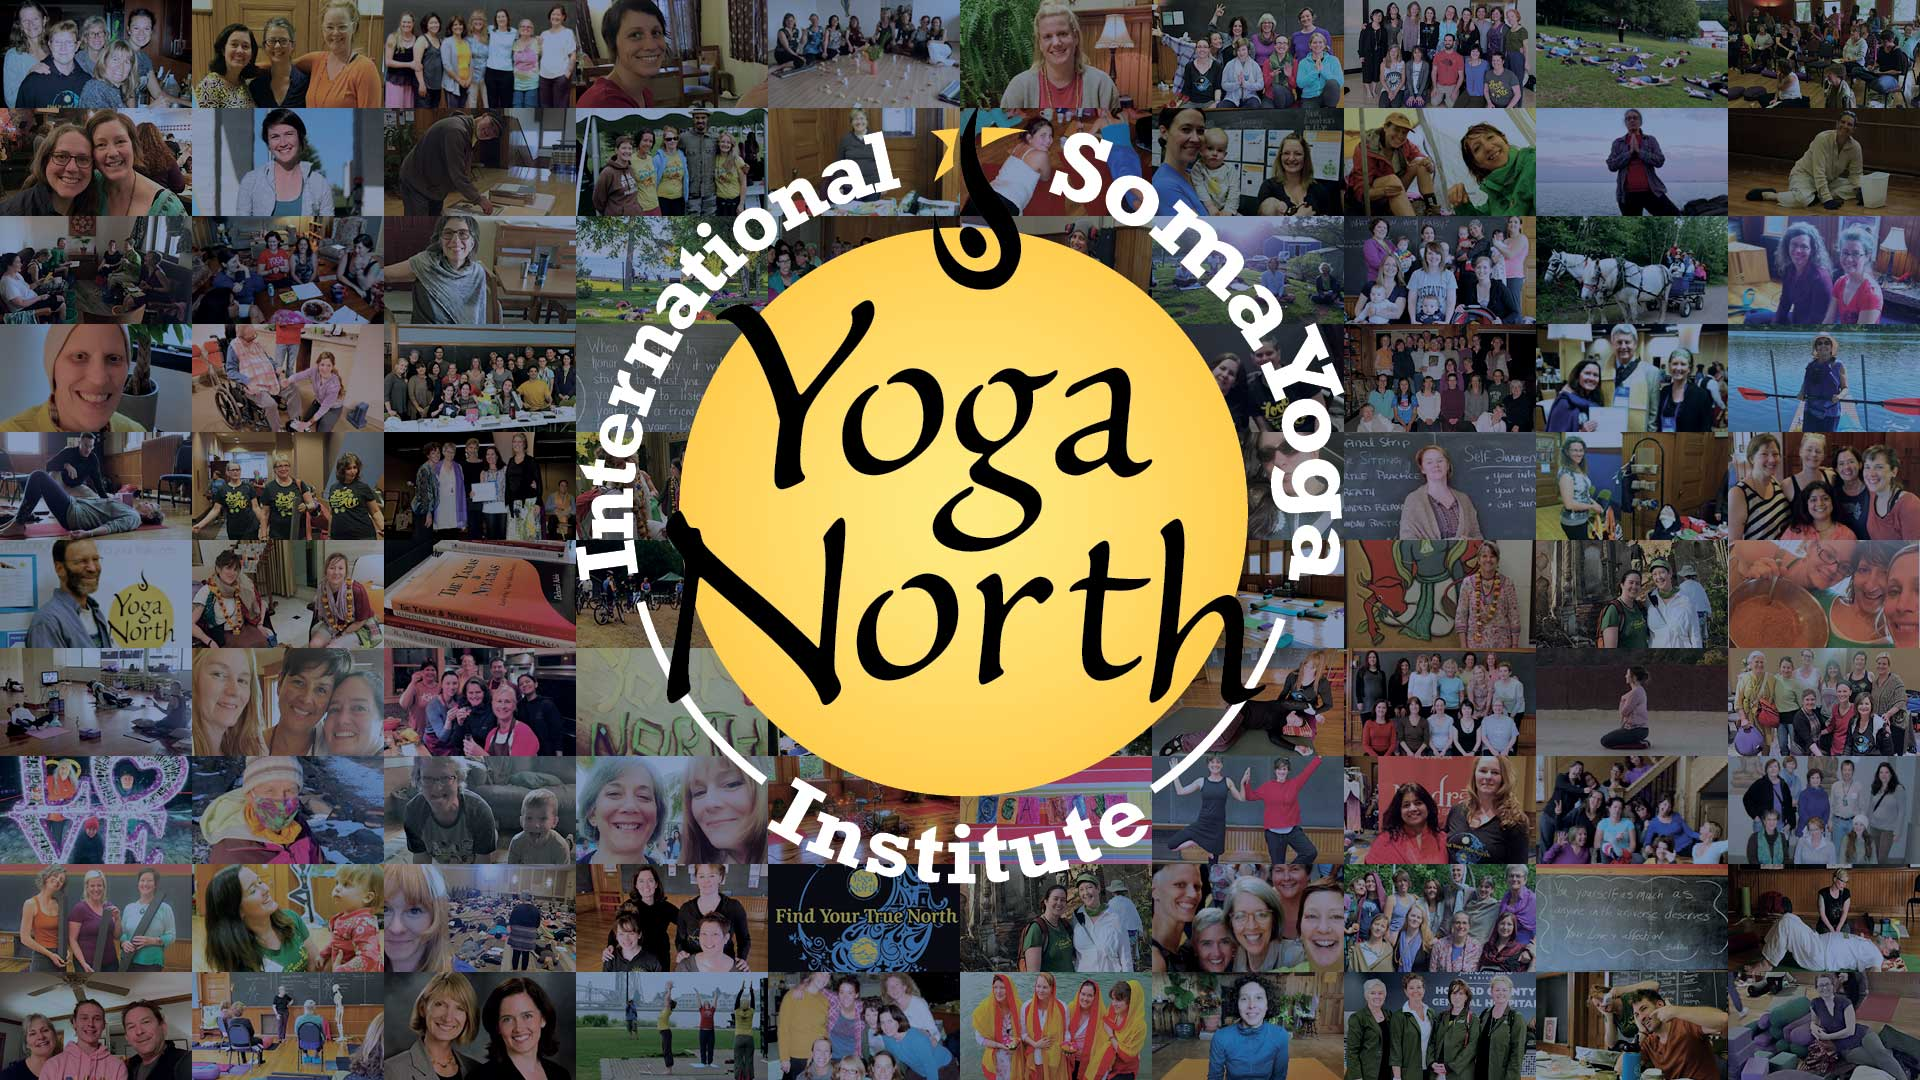 Yoga North ISYI 25th Anniversary Collage